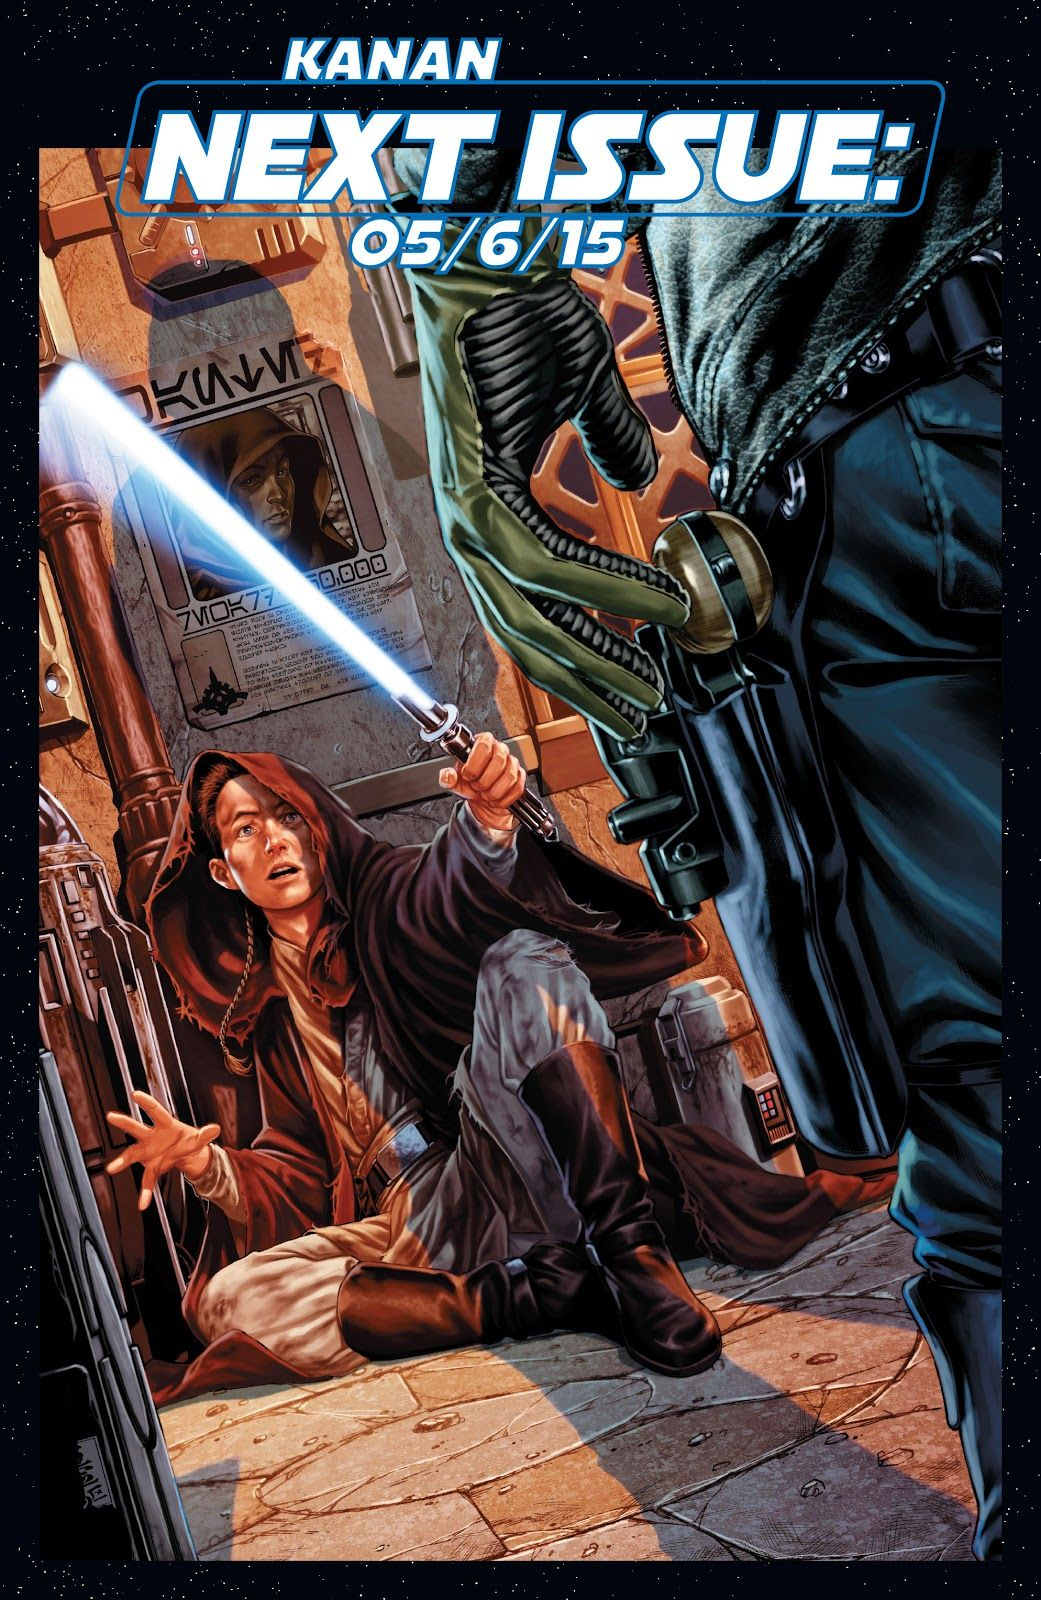 Kanan issue 1 read kanan issue 1 comic online in high